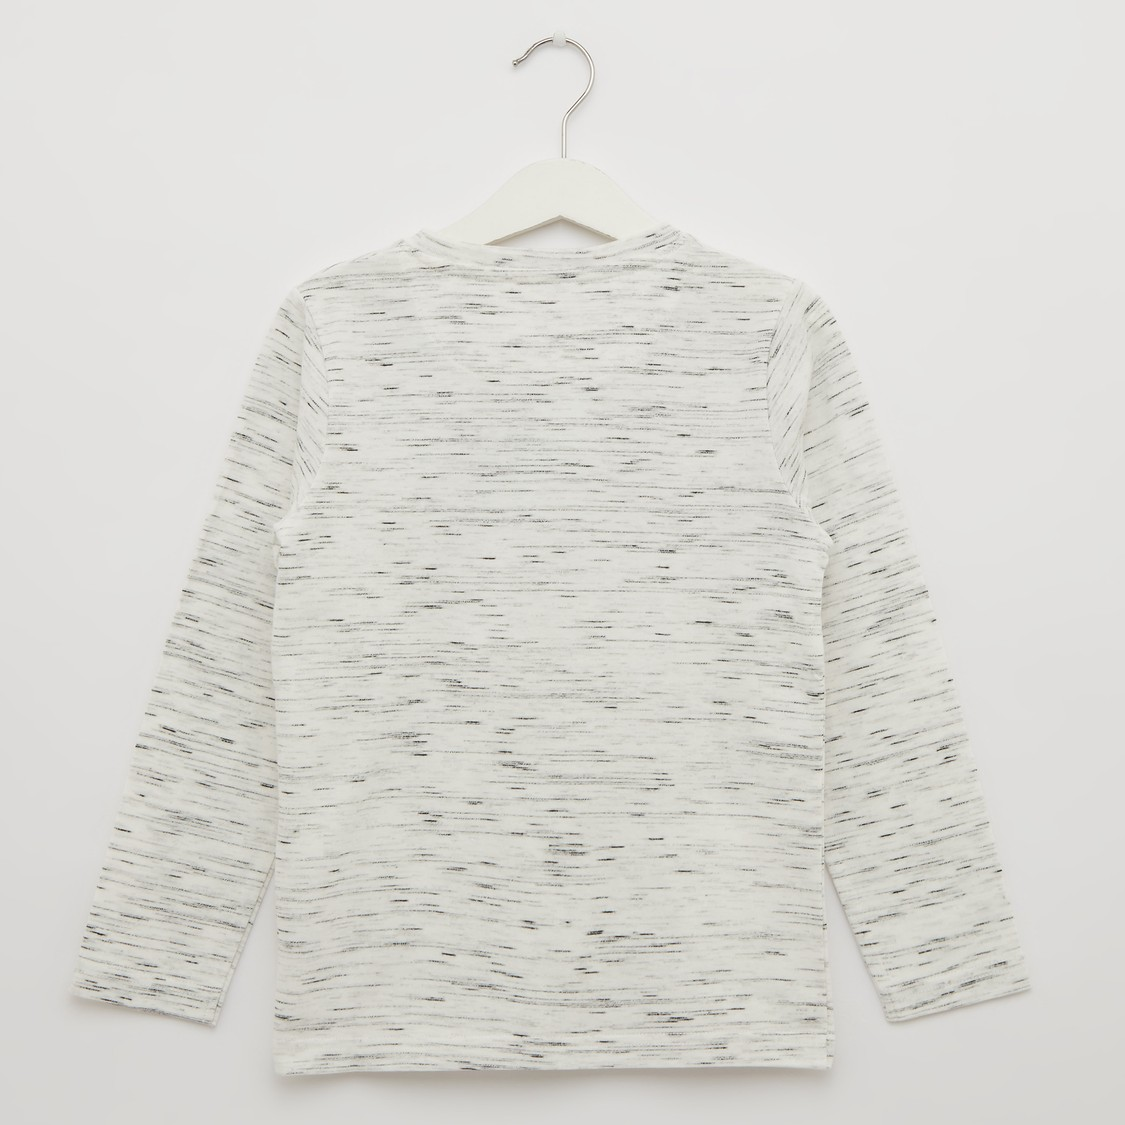 Printed T-shirt with Henley Neck and Long Sleeves